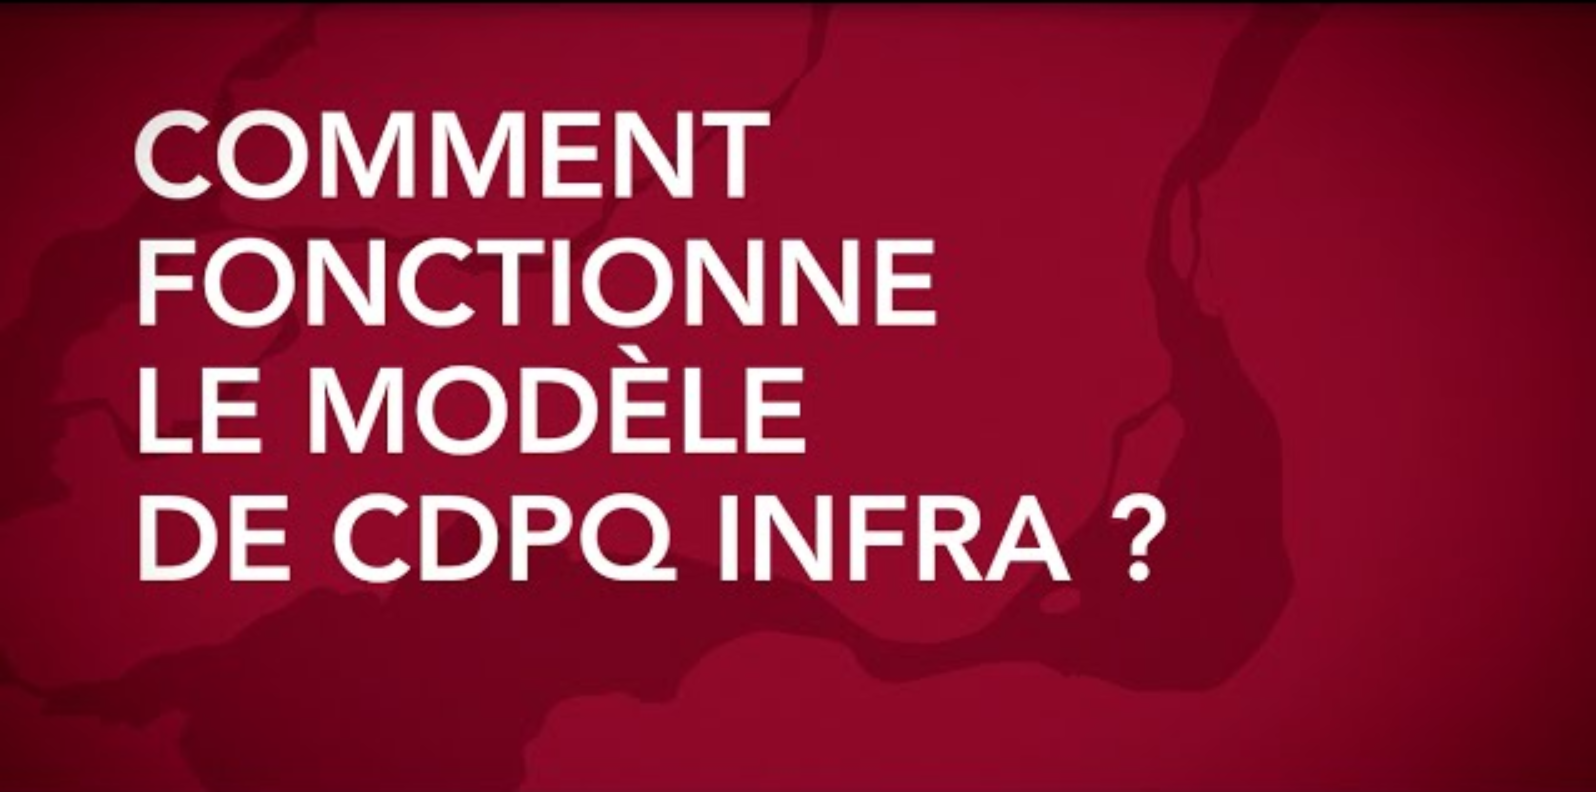 The CDPQ Infra model in 2 minutes